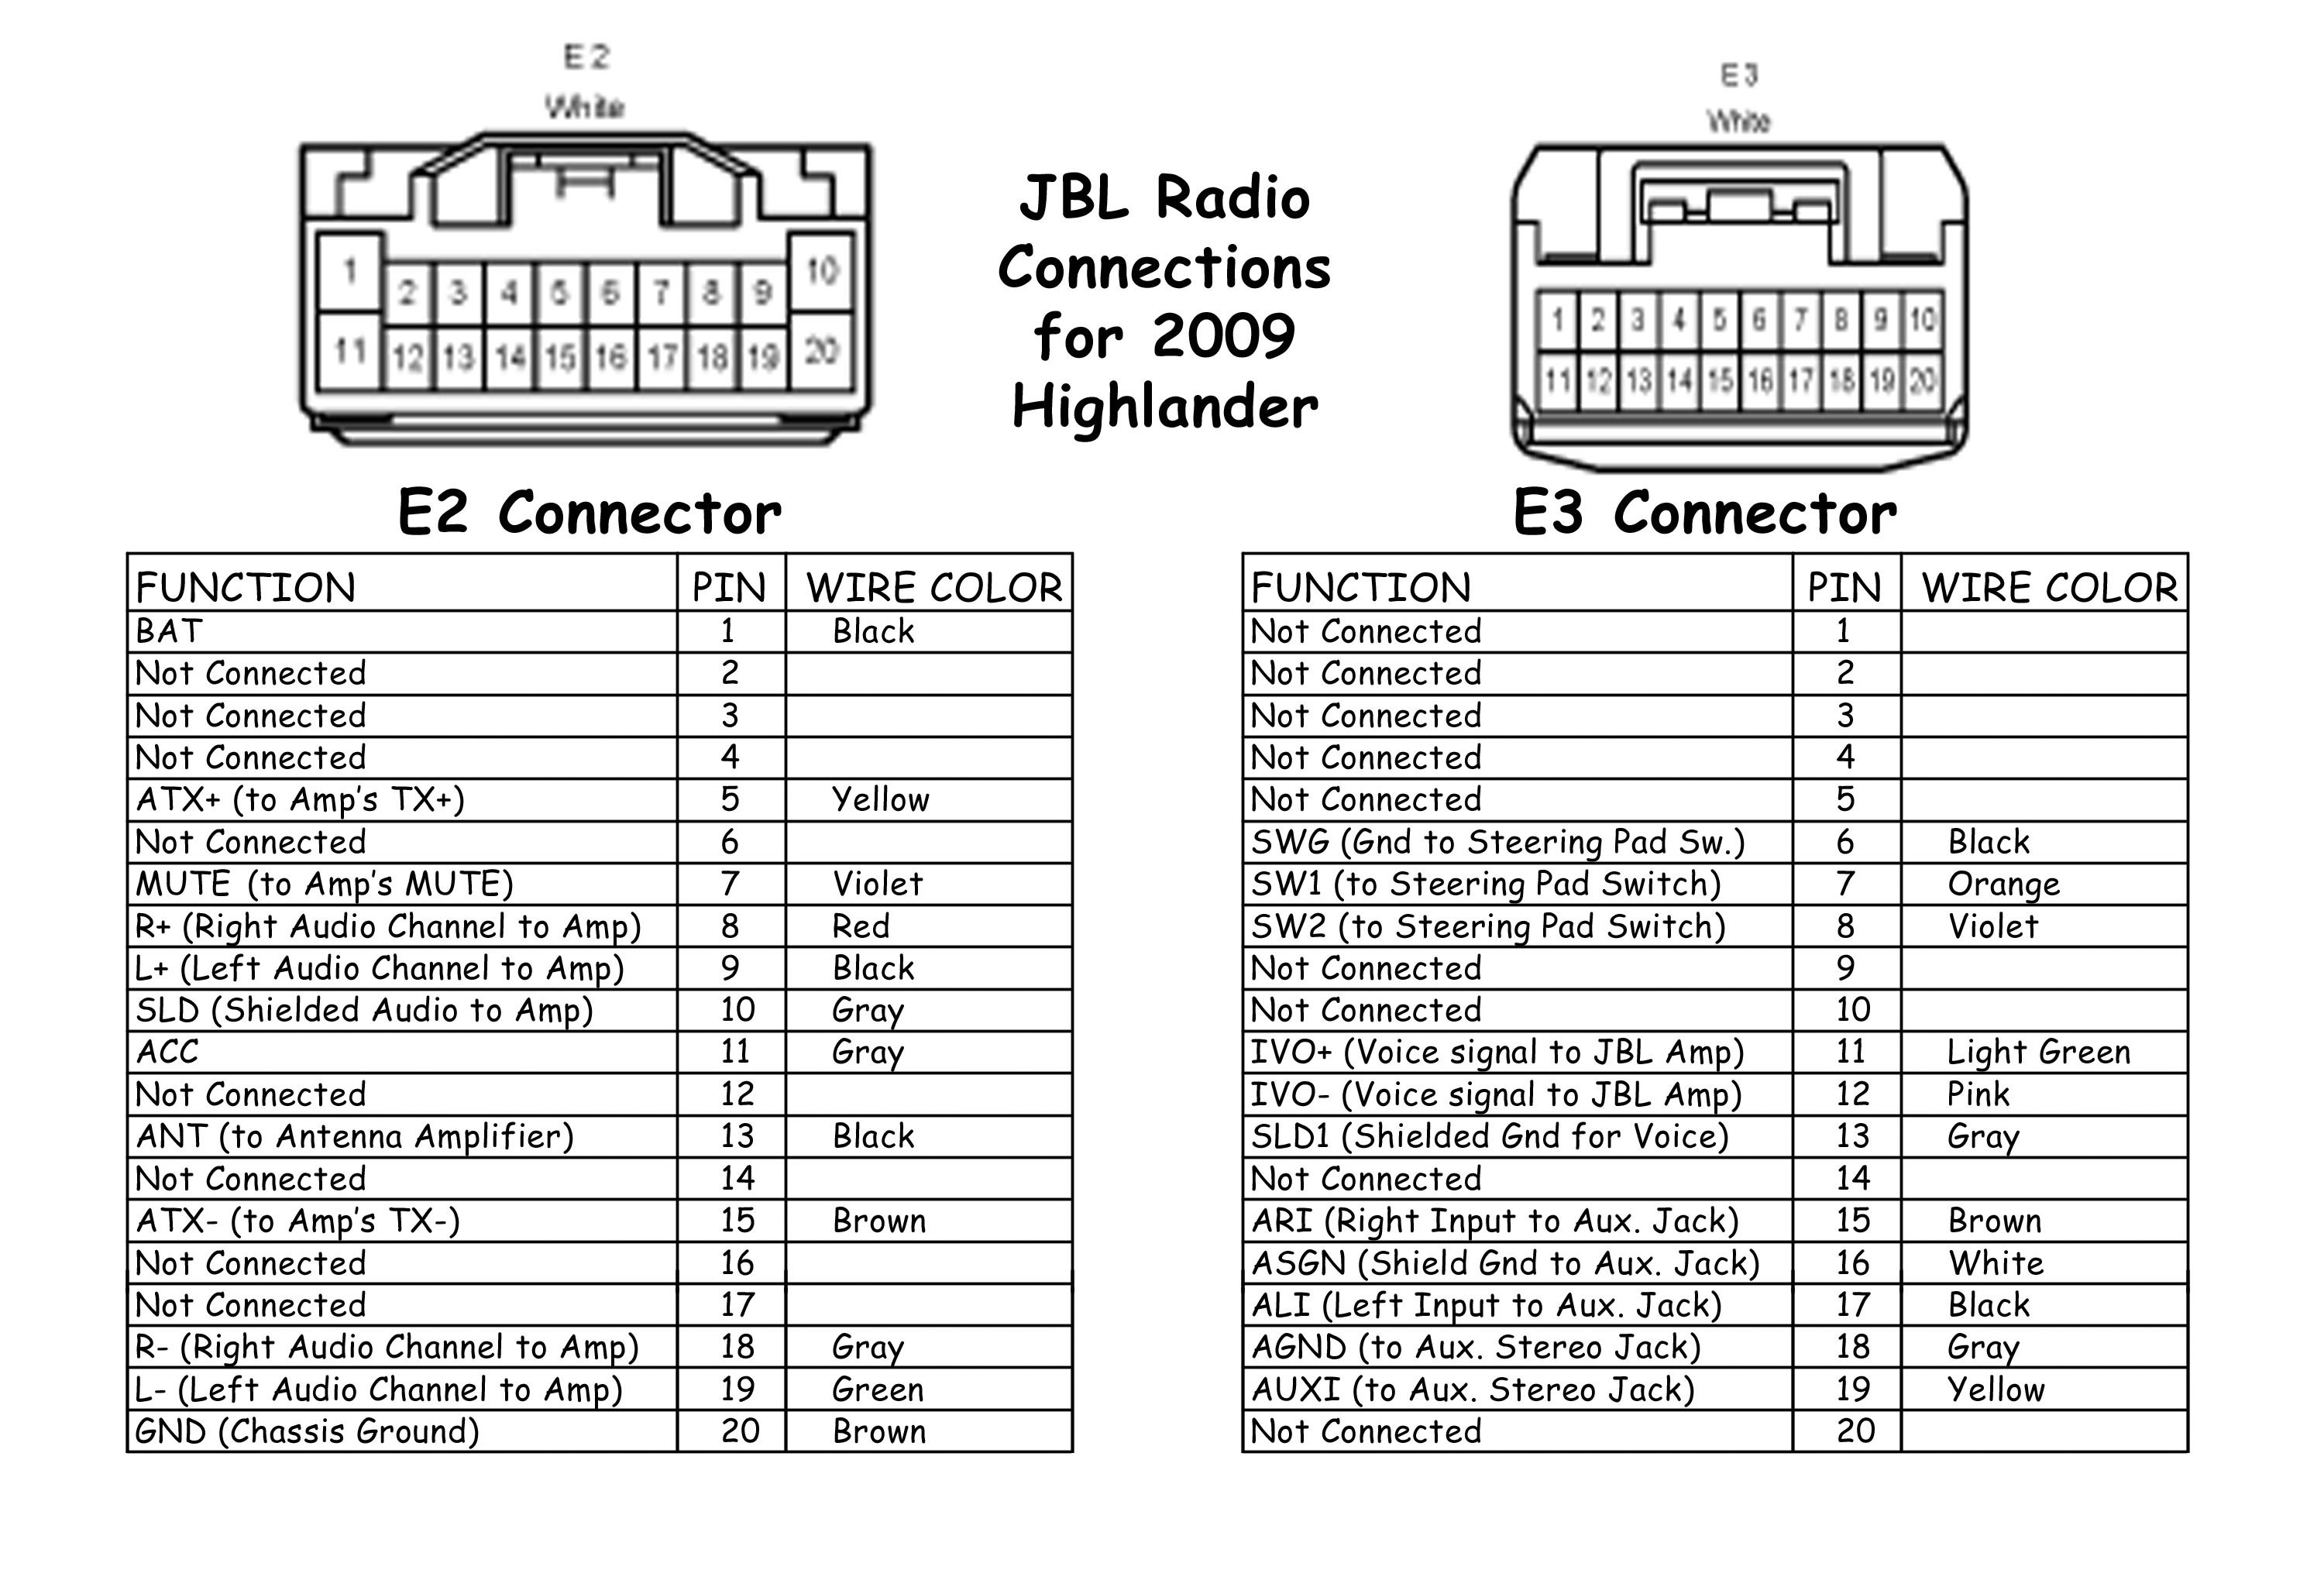 1998 toyota camry radio wiring diagram Download-1998 toyota Camry Stereo Wiring Harness Diagram Free Download Wiring 1998 toyota Radio Wiring Diagram 14-i